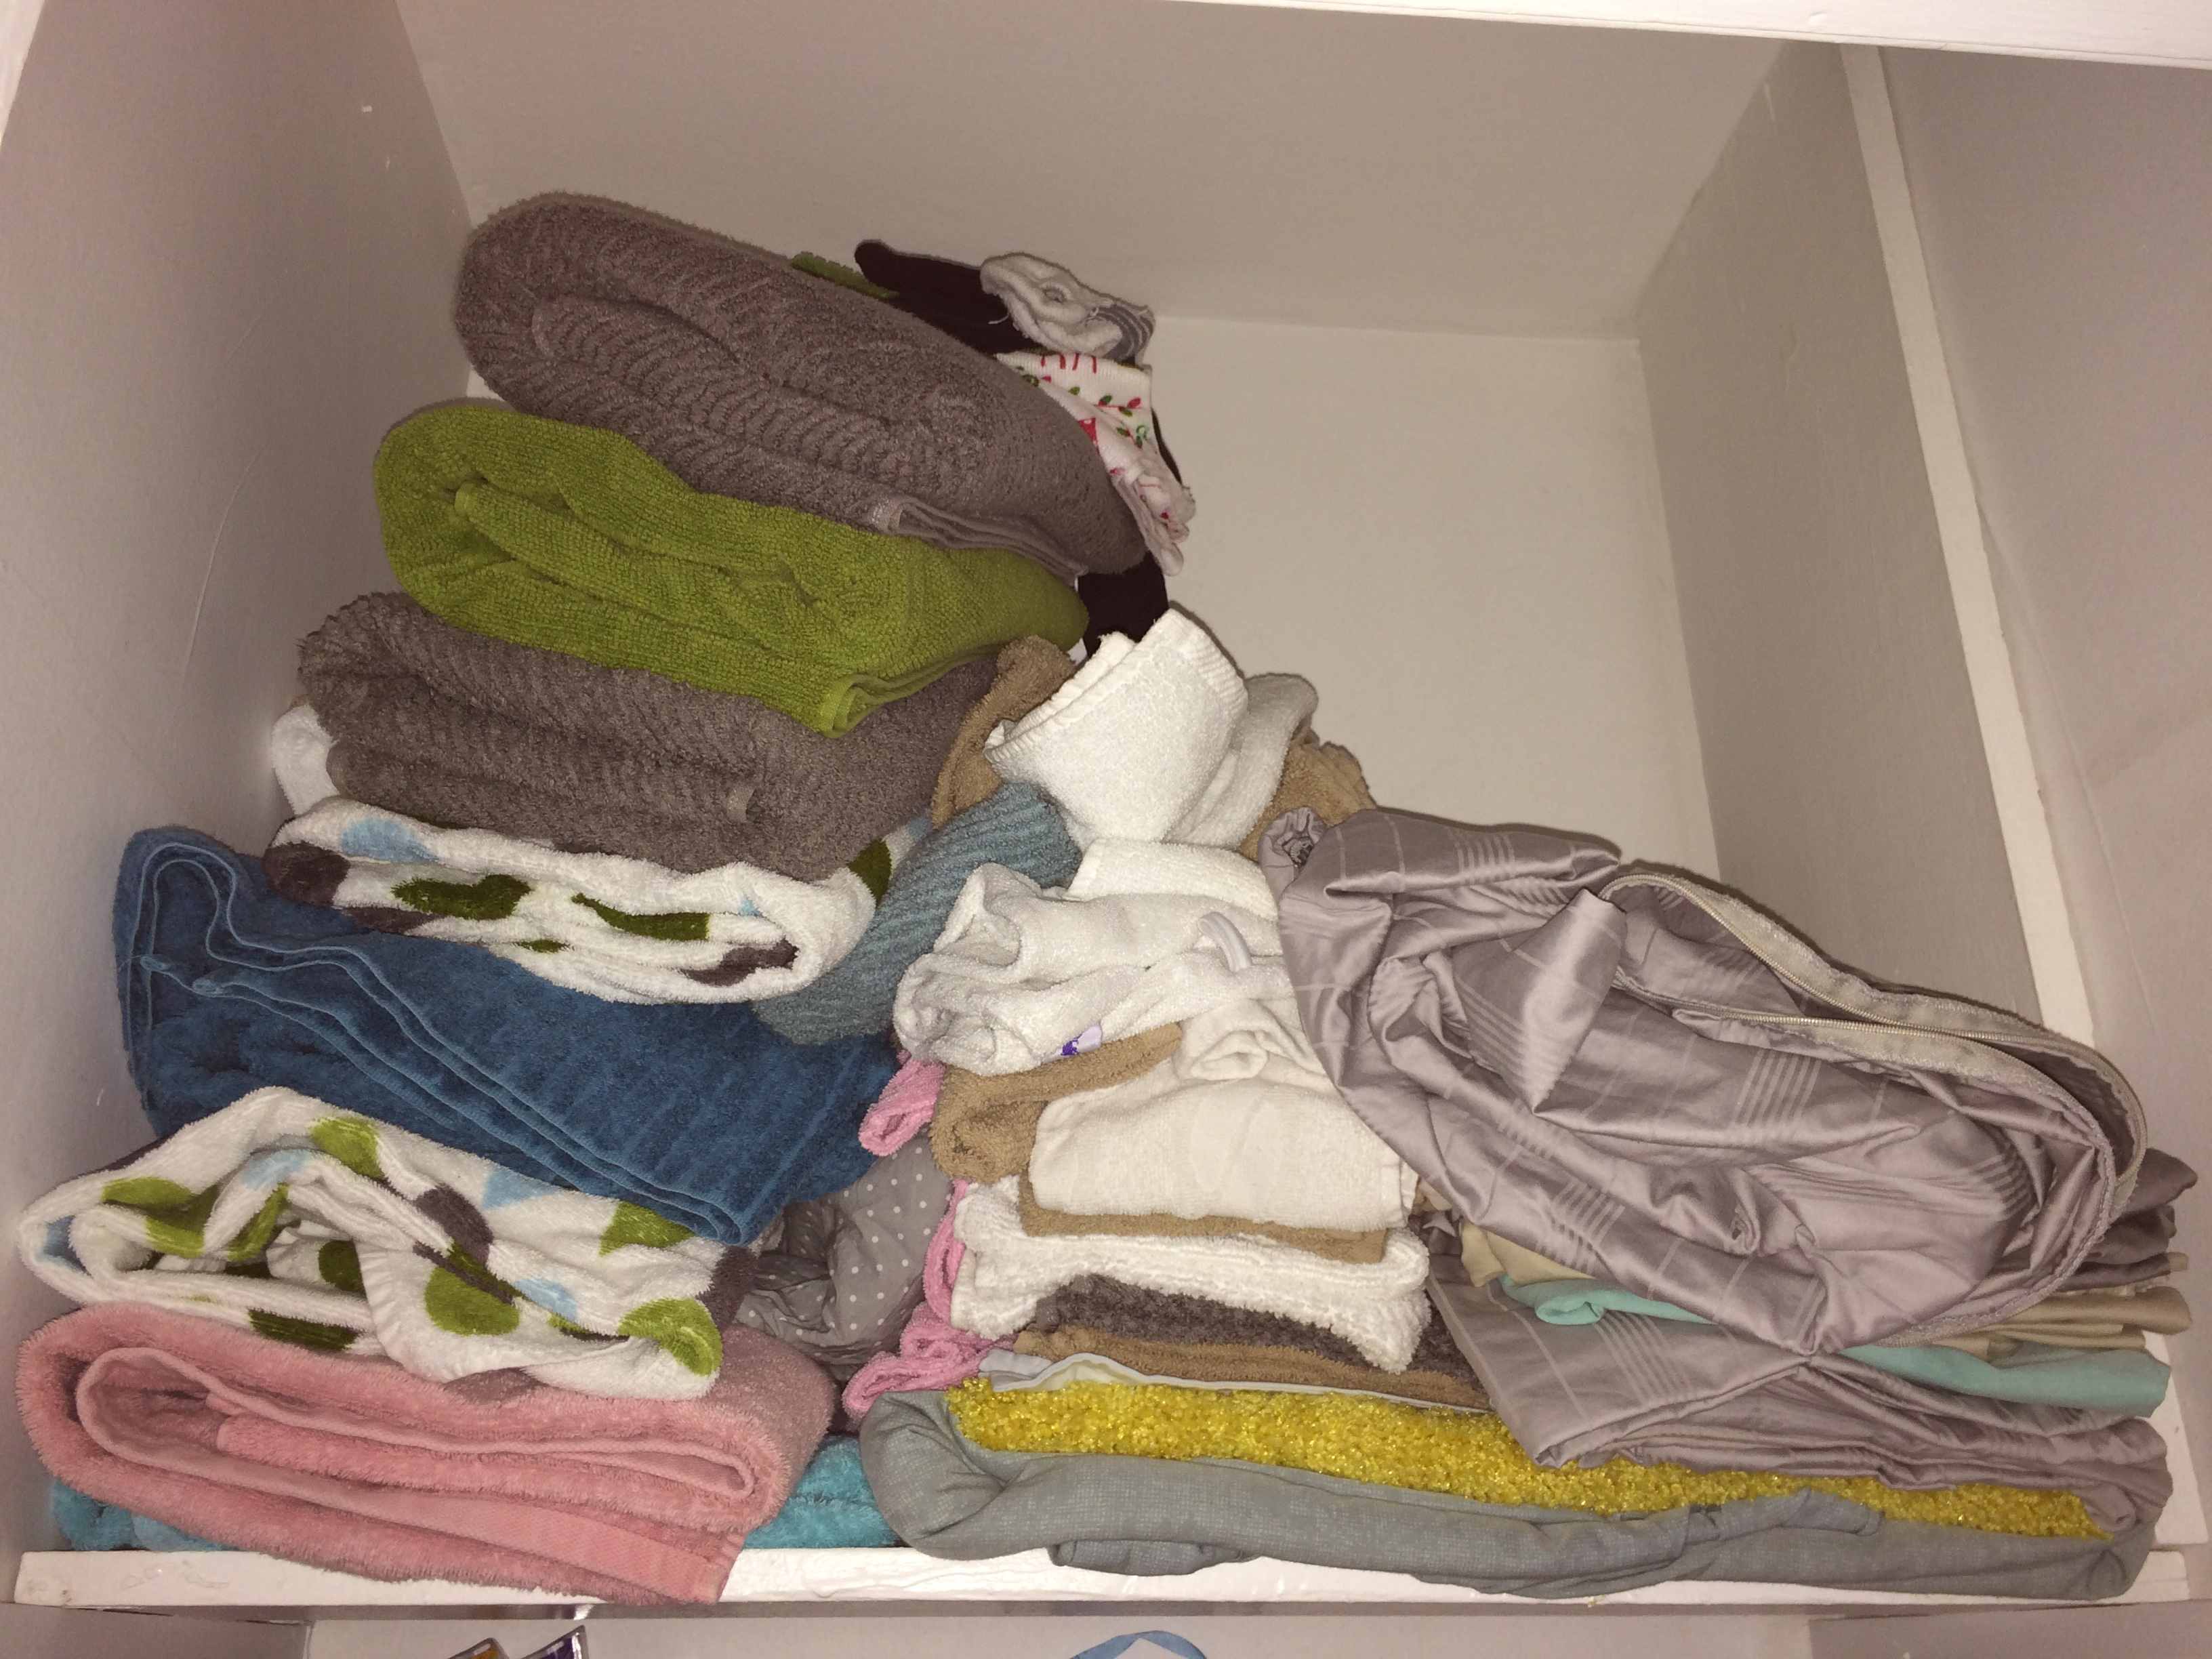 A Messy Pile Of Linens